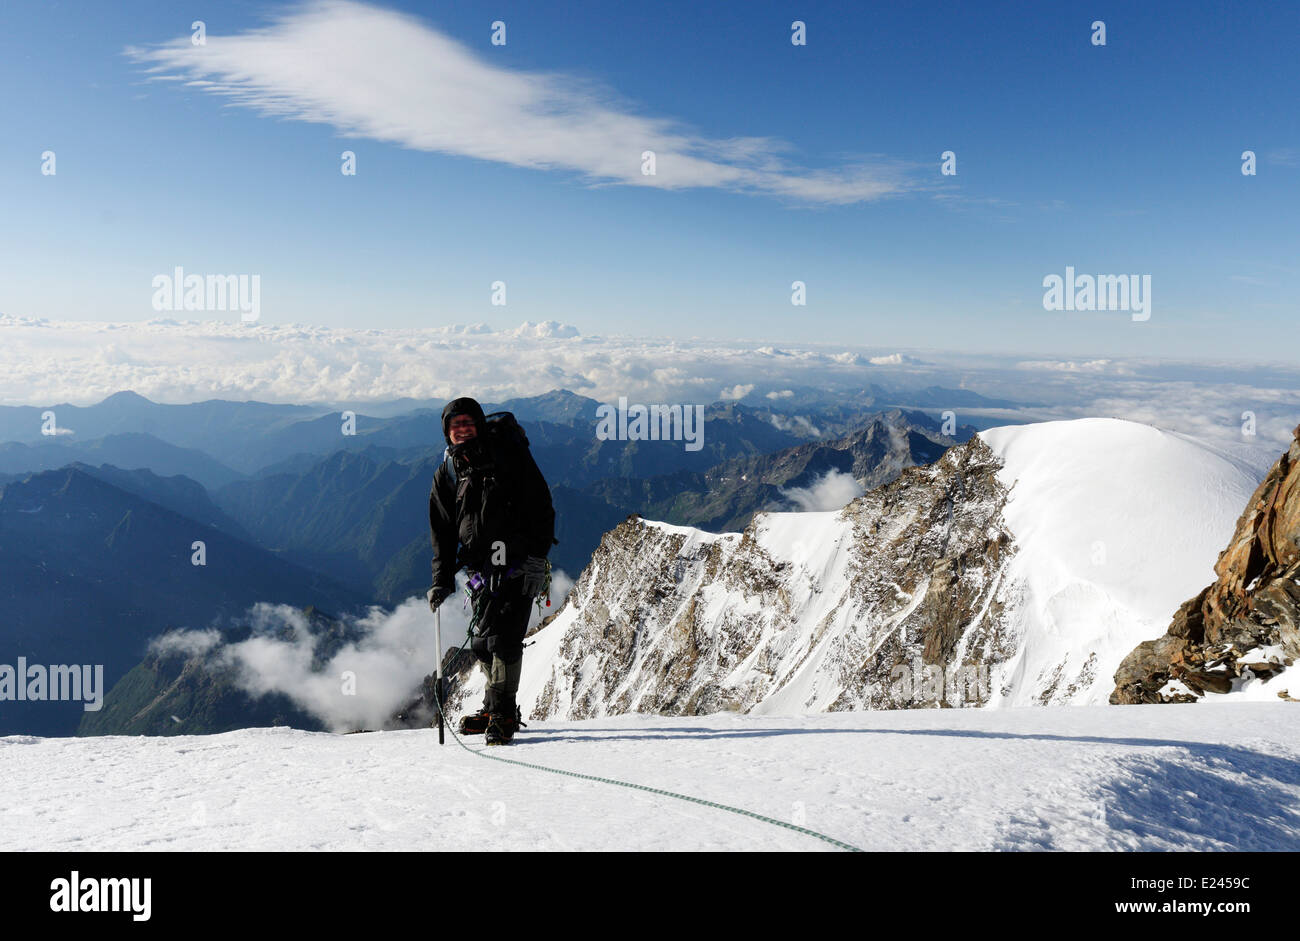 A climber pauses for a breather on the ascent of Monte Rosa in he Swiss Alps - Stock Image